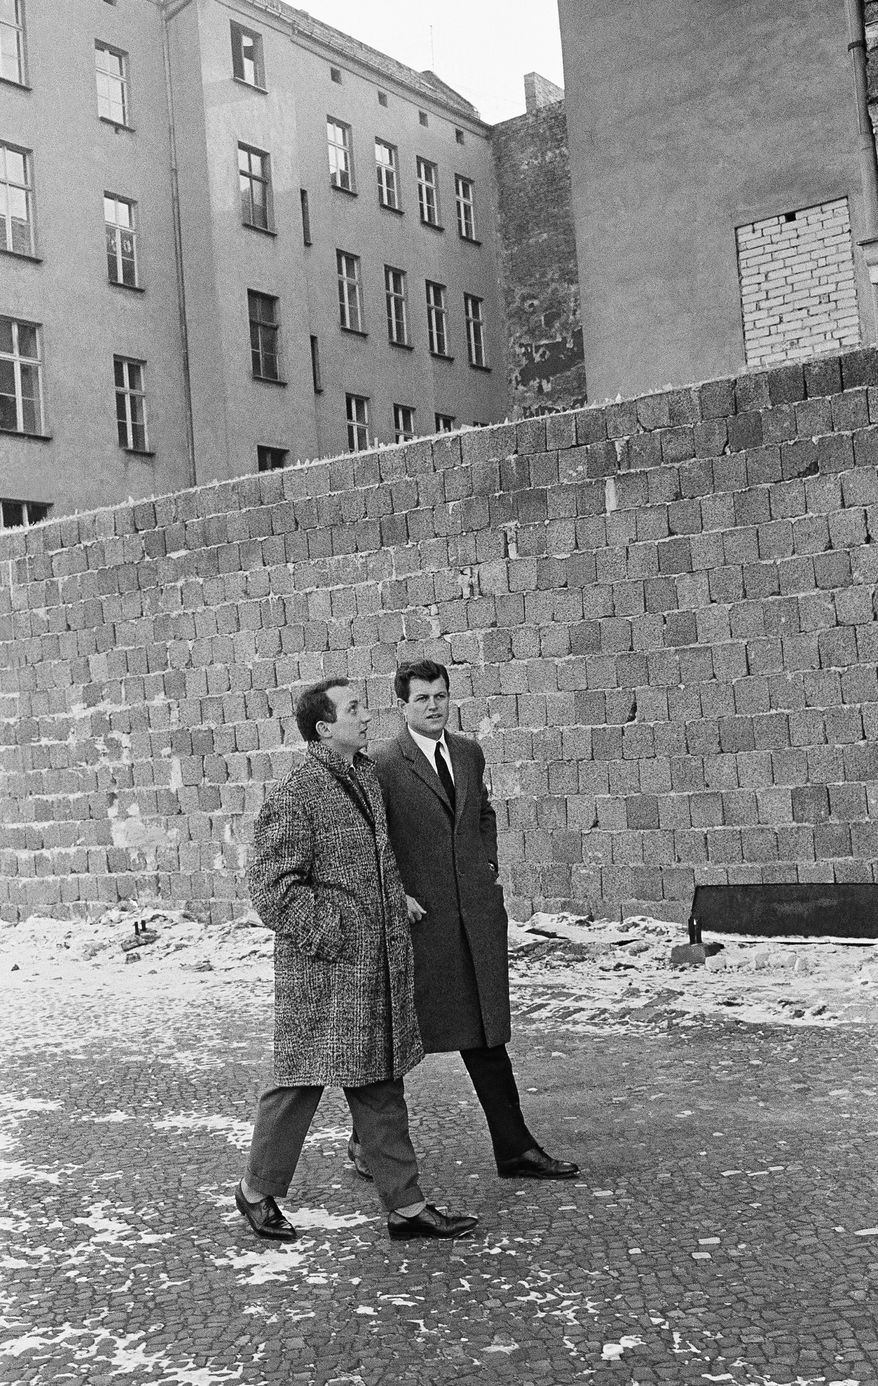 Edward Kennedy, right, in Berlin inspect the Wall at Bernauer Street on Feb. 23, 1962, accompanied by unidentified interpreter. (AP Photo/Reichert)